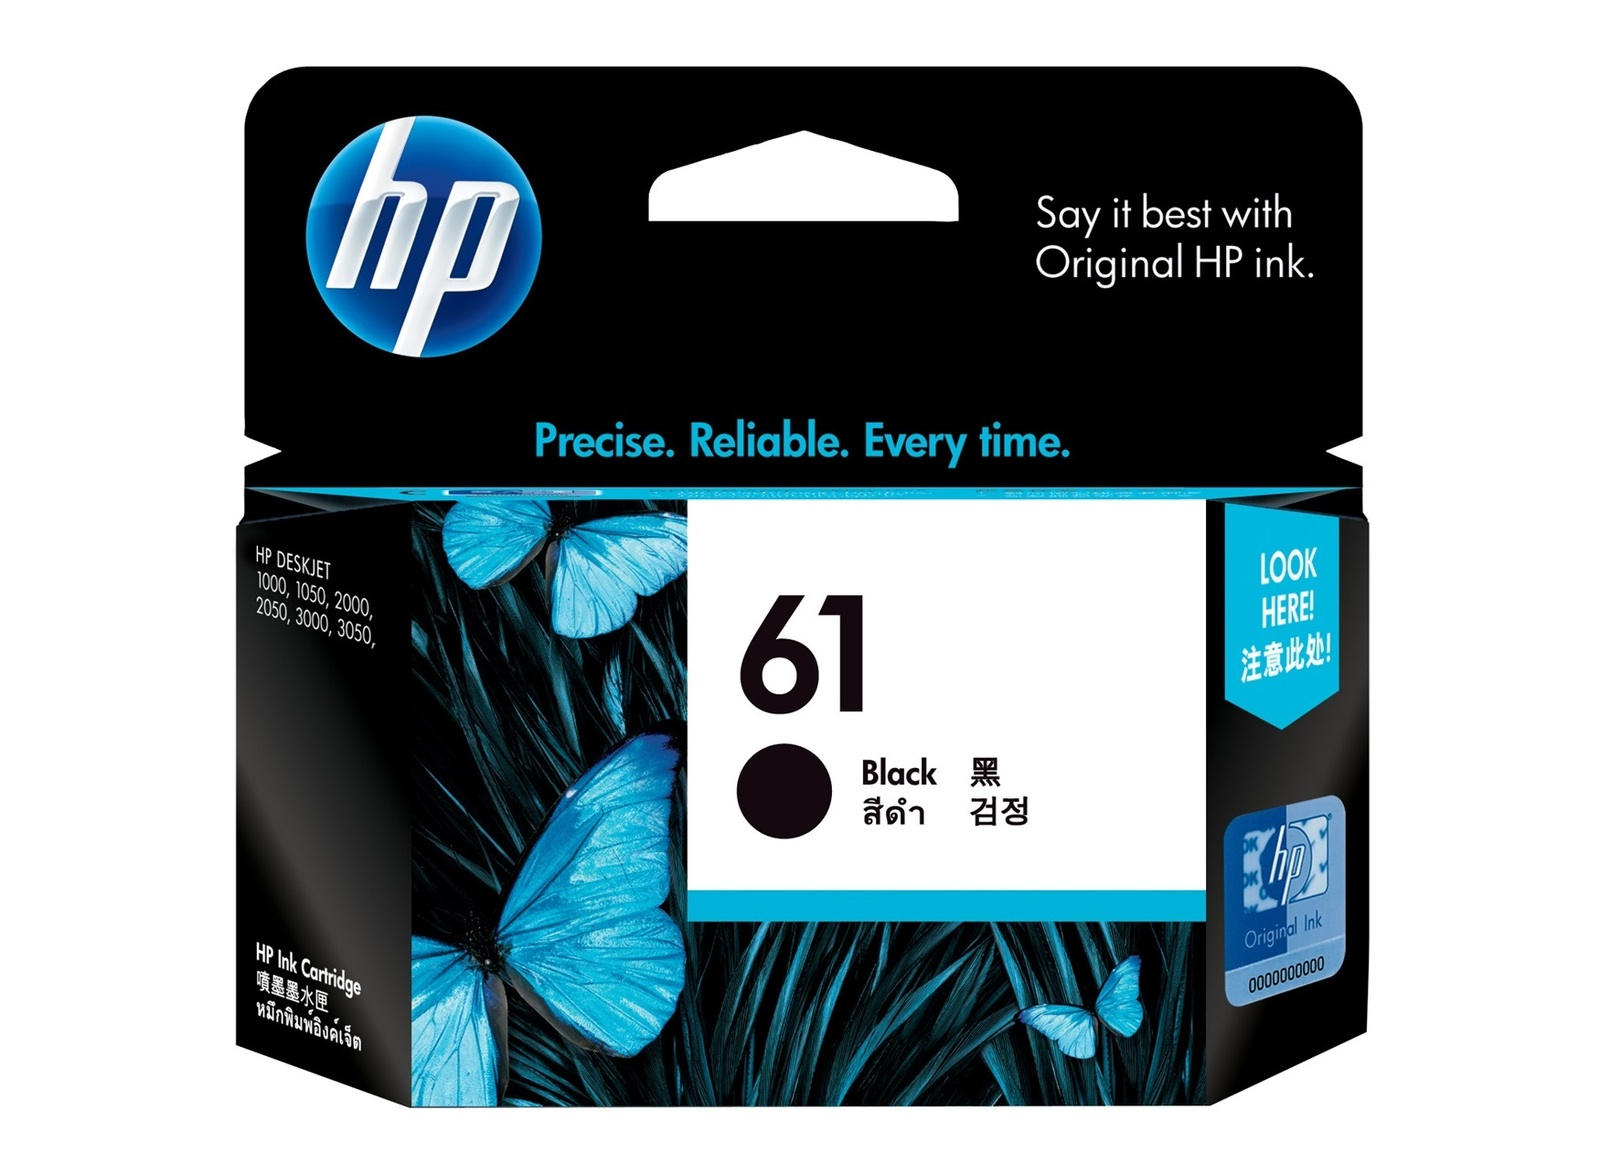 HP 61 Black Ink Cartridge image